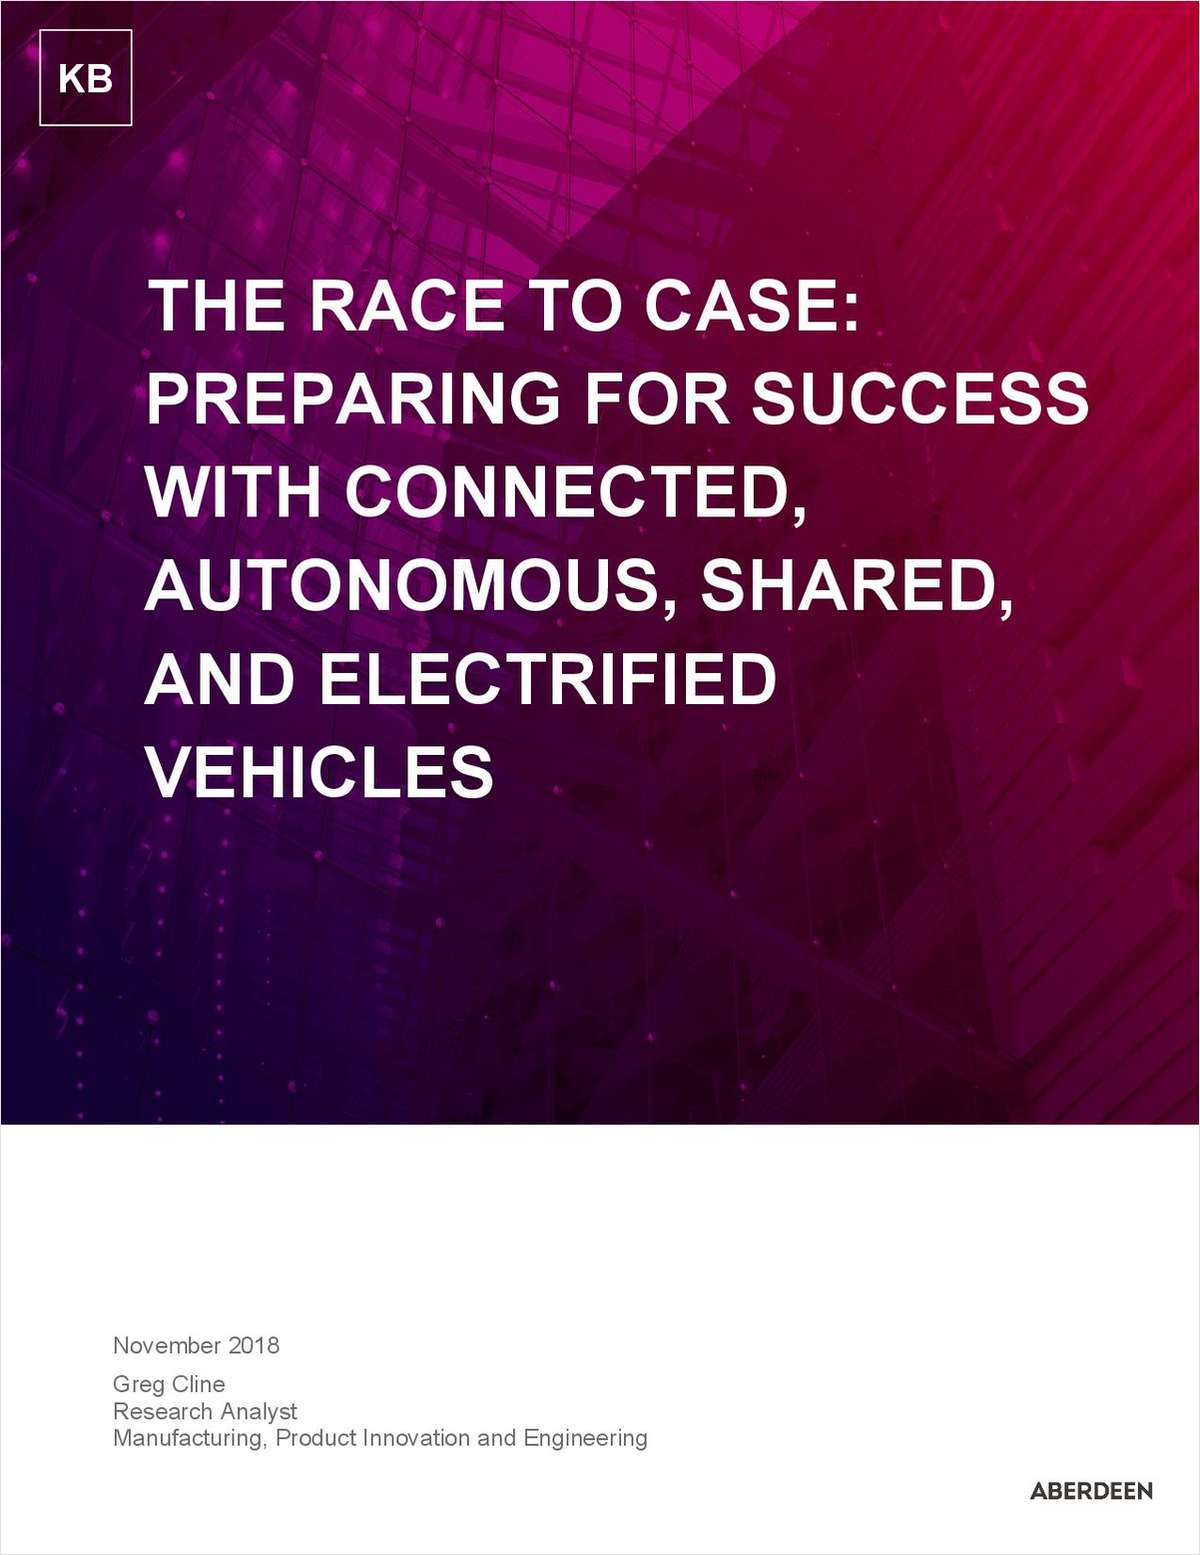 The Race to Case: Preparing for Success With Connected, Autonomous, Shared and Electric Vehicles